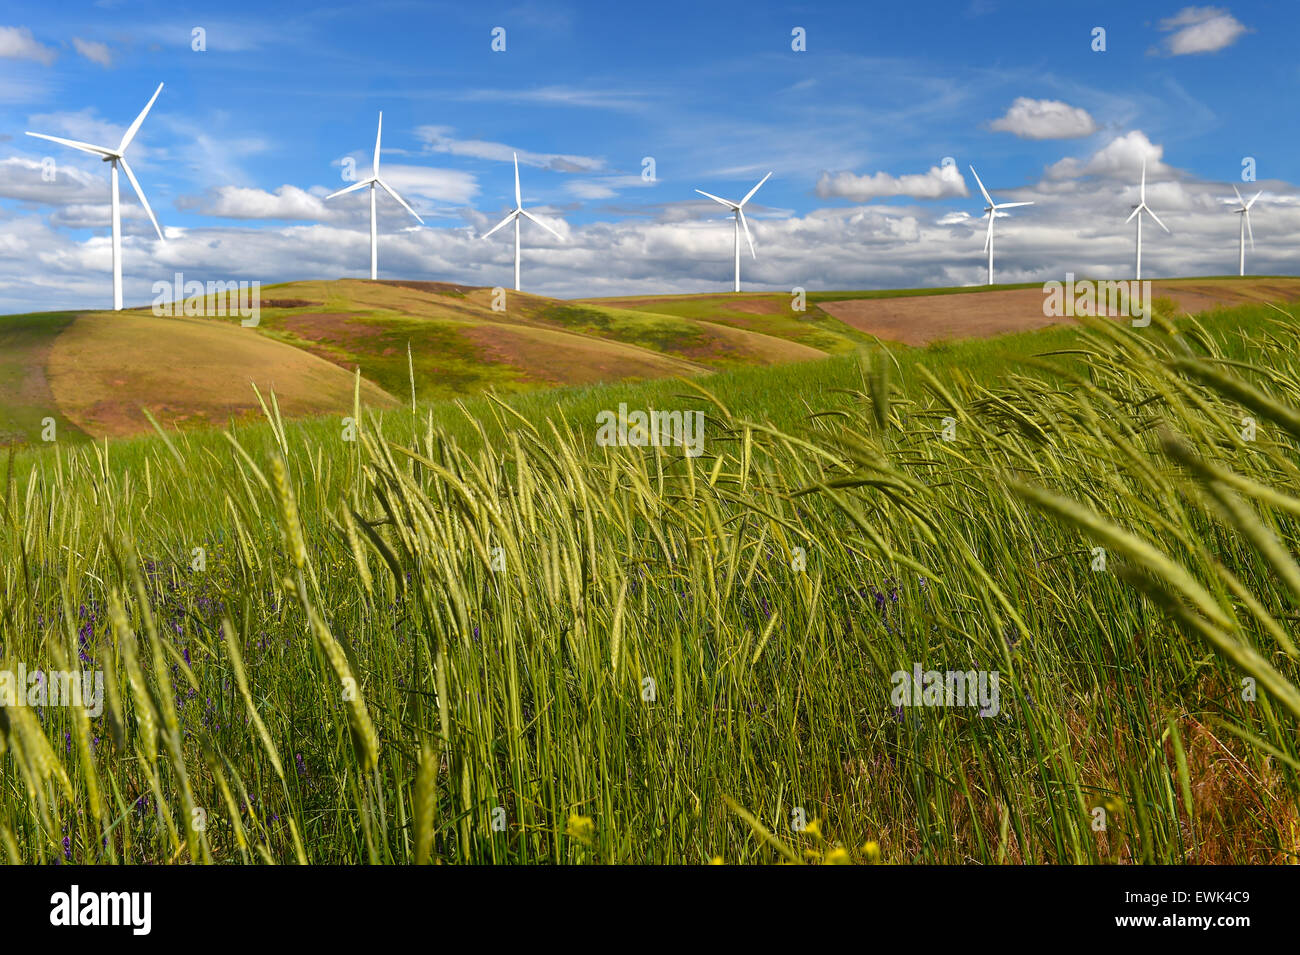 wind farm turbines on hill contrast green grass and blue sky, washington state, united states - Stock Image